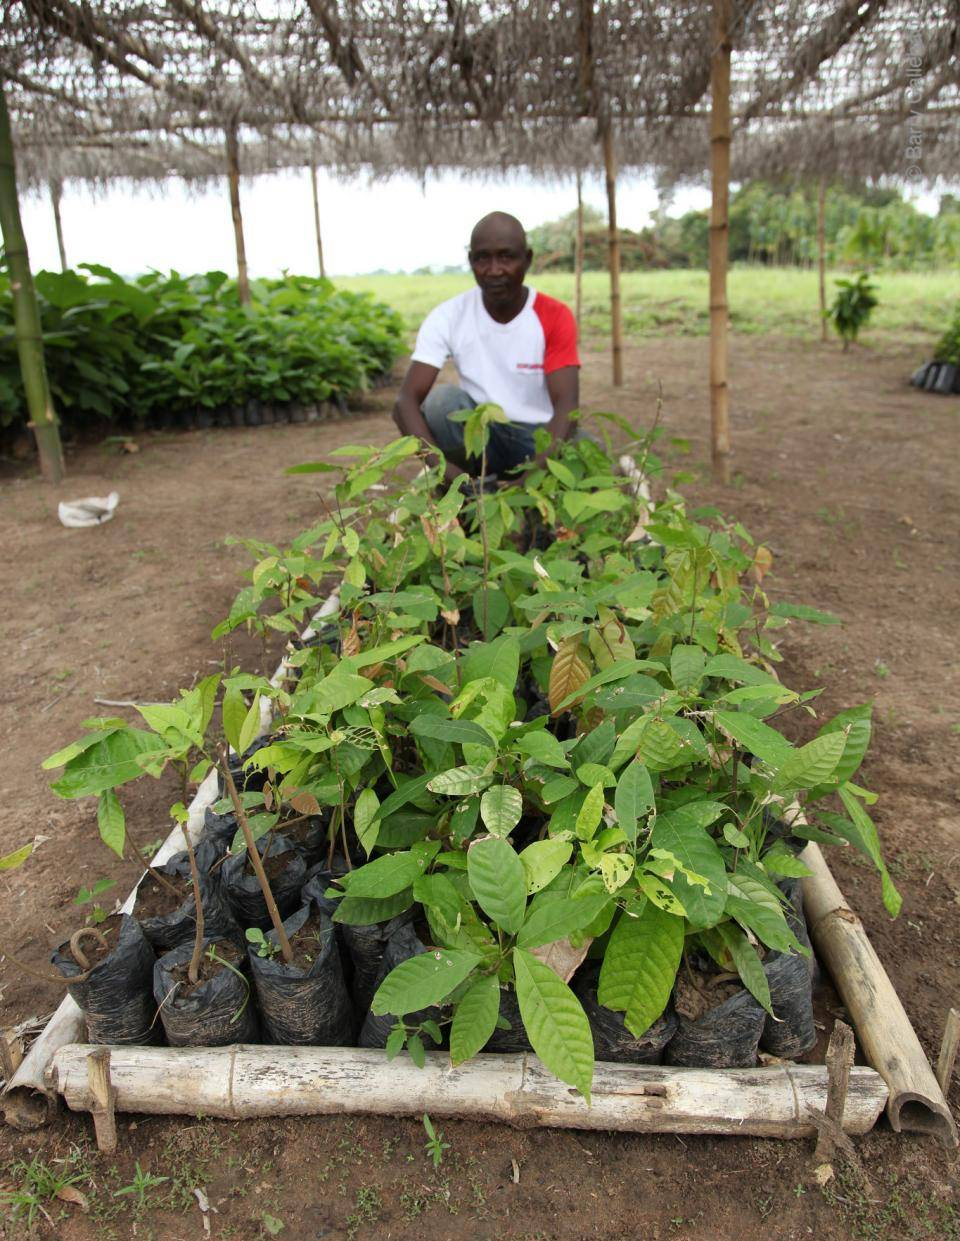 Farmer with a batch of seedlings